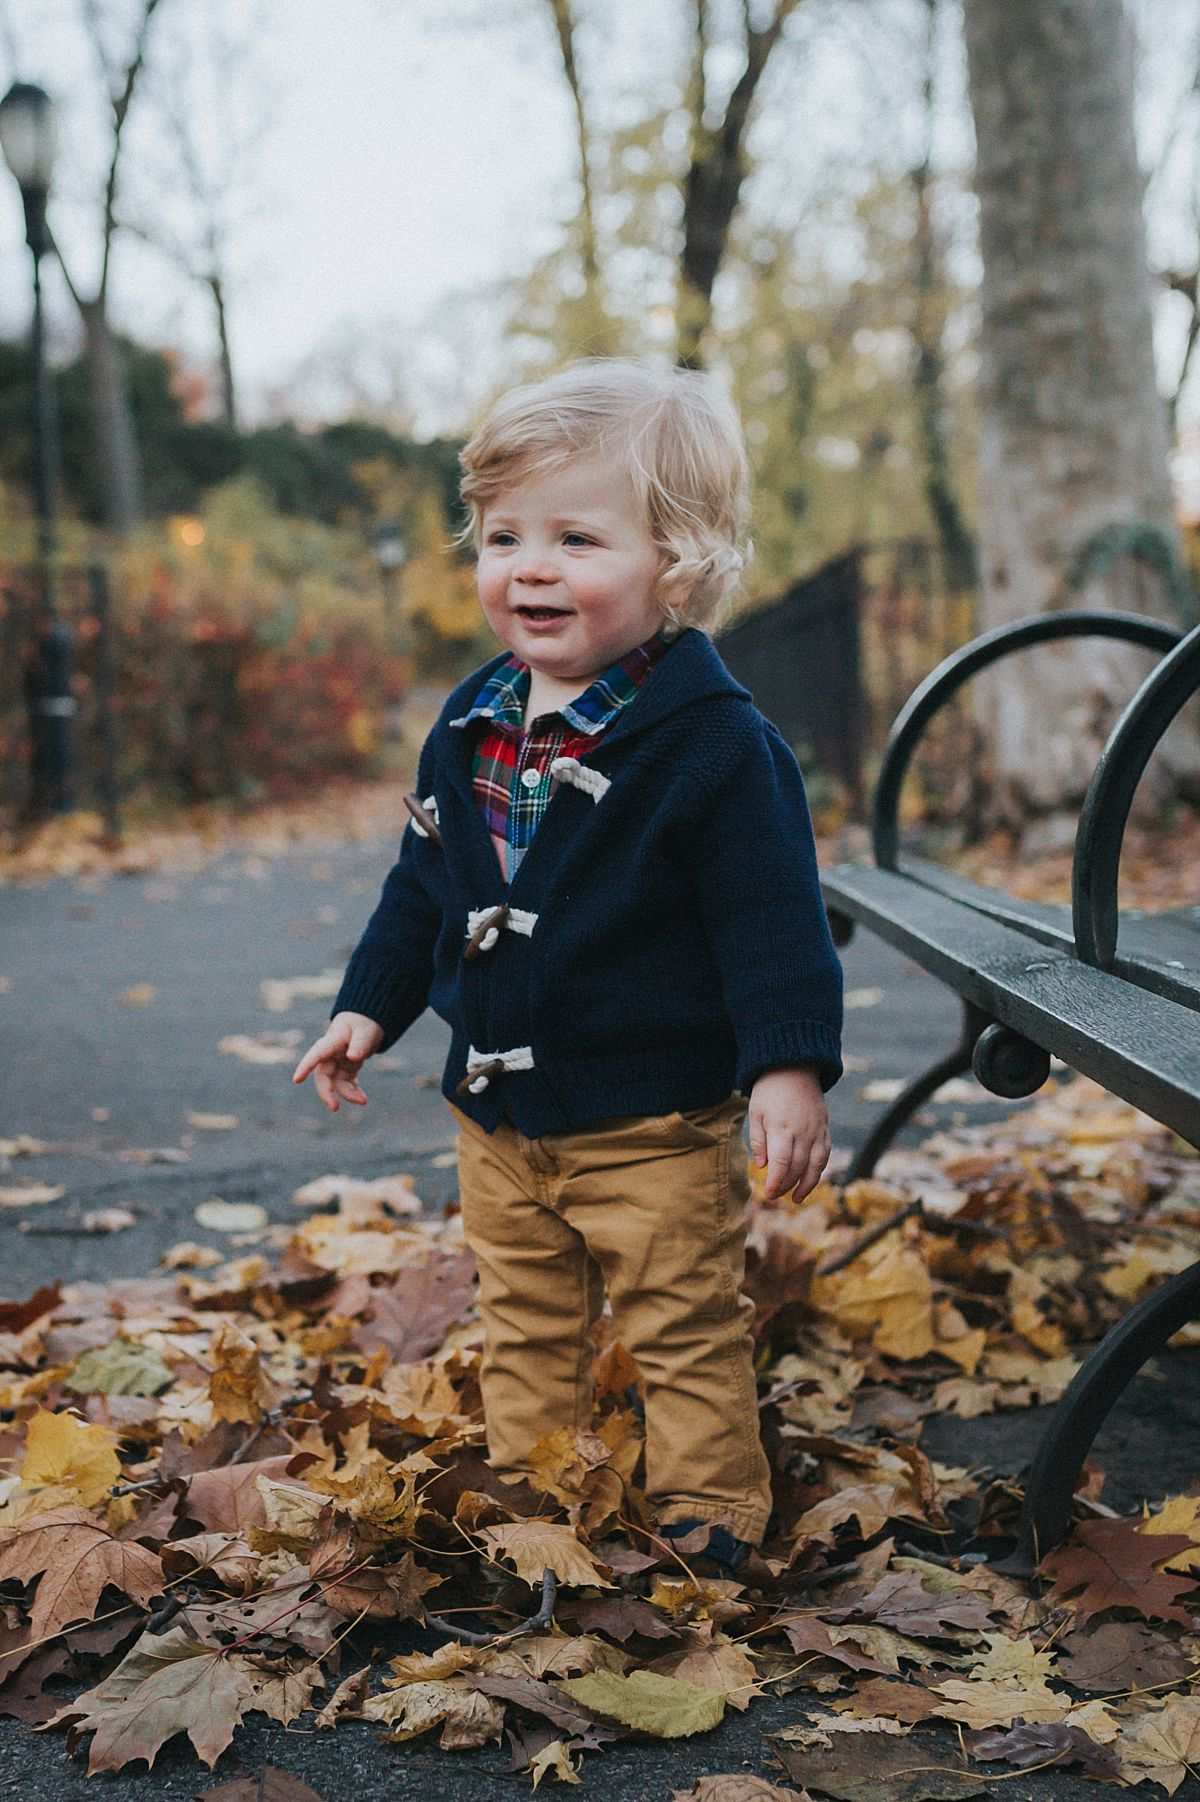 nyc family and newborn photographer portrait of toddler boy standing among fall leaves in nyc park